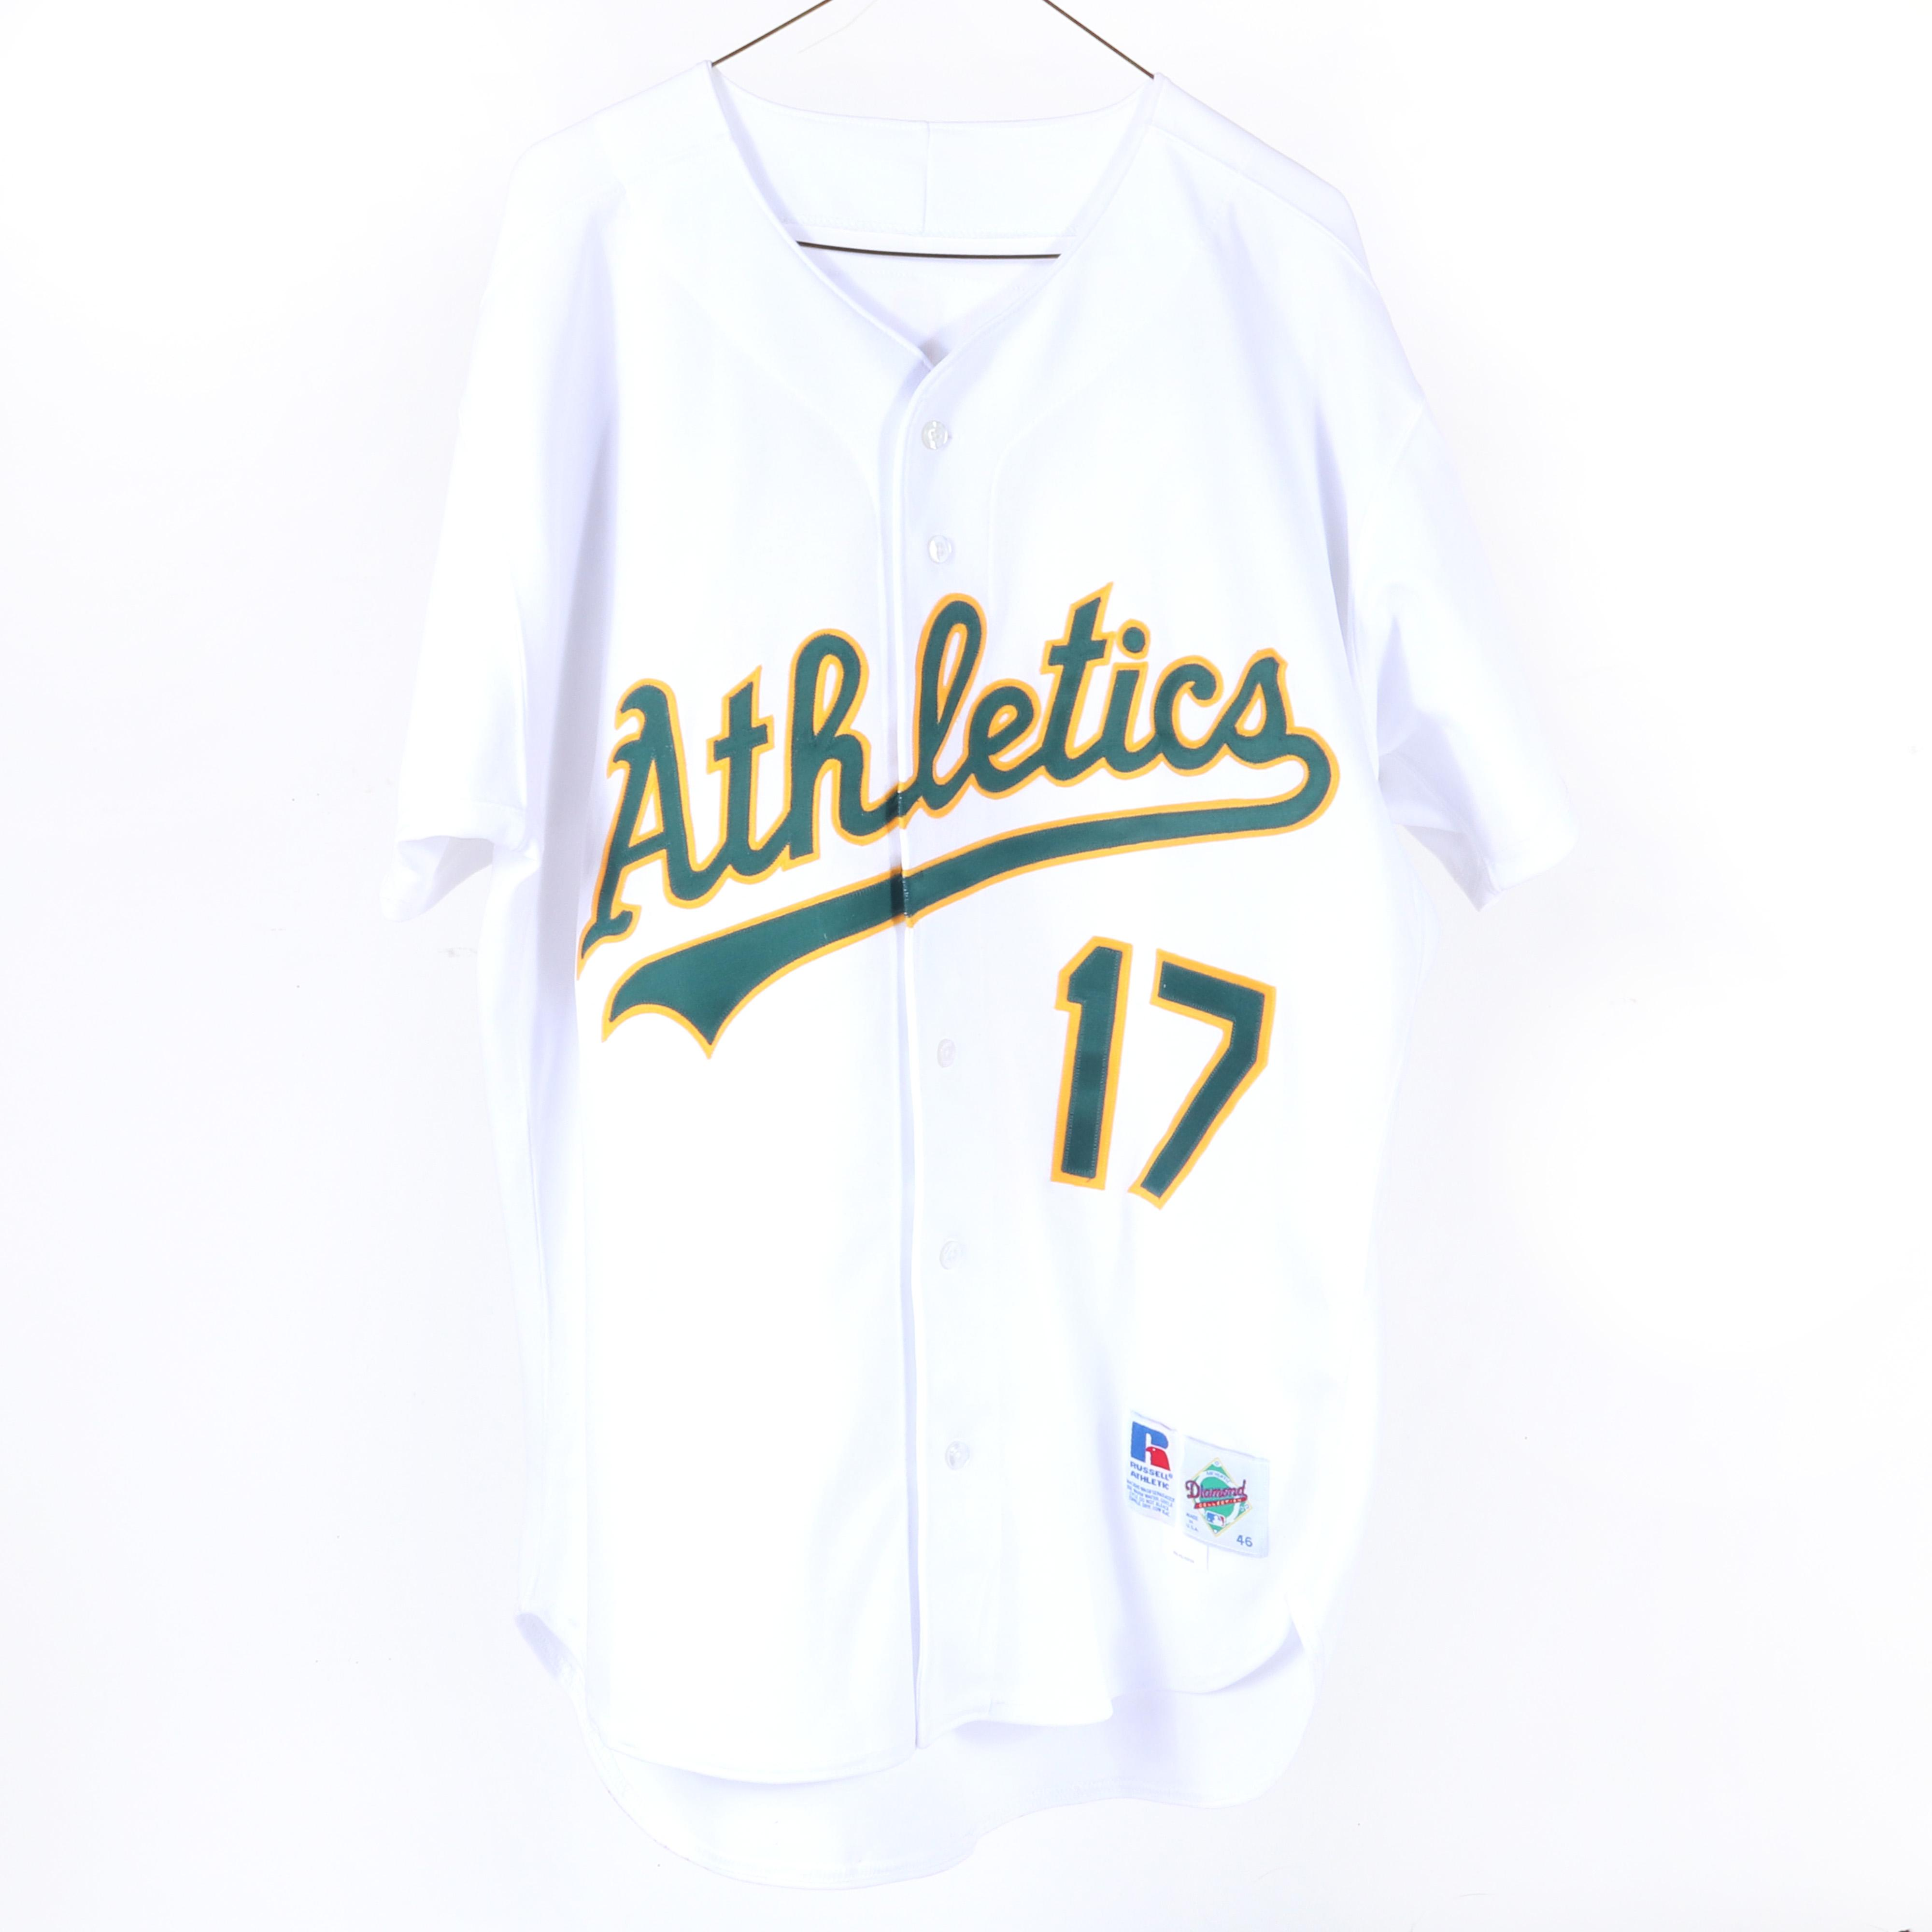 1995 Ron Darling Oakland A's Game Used & Autographed Jersey